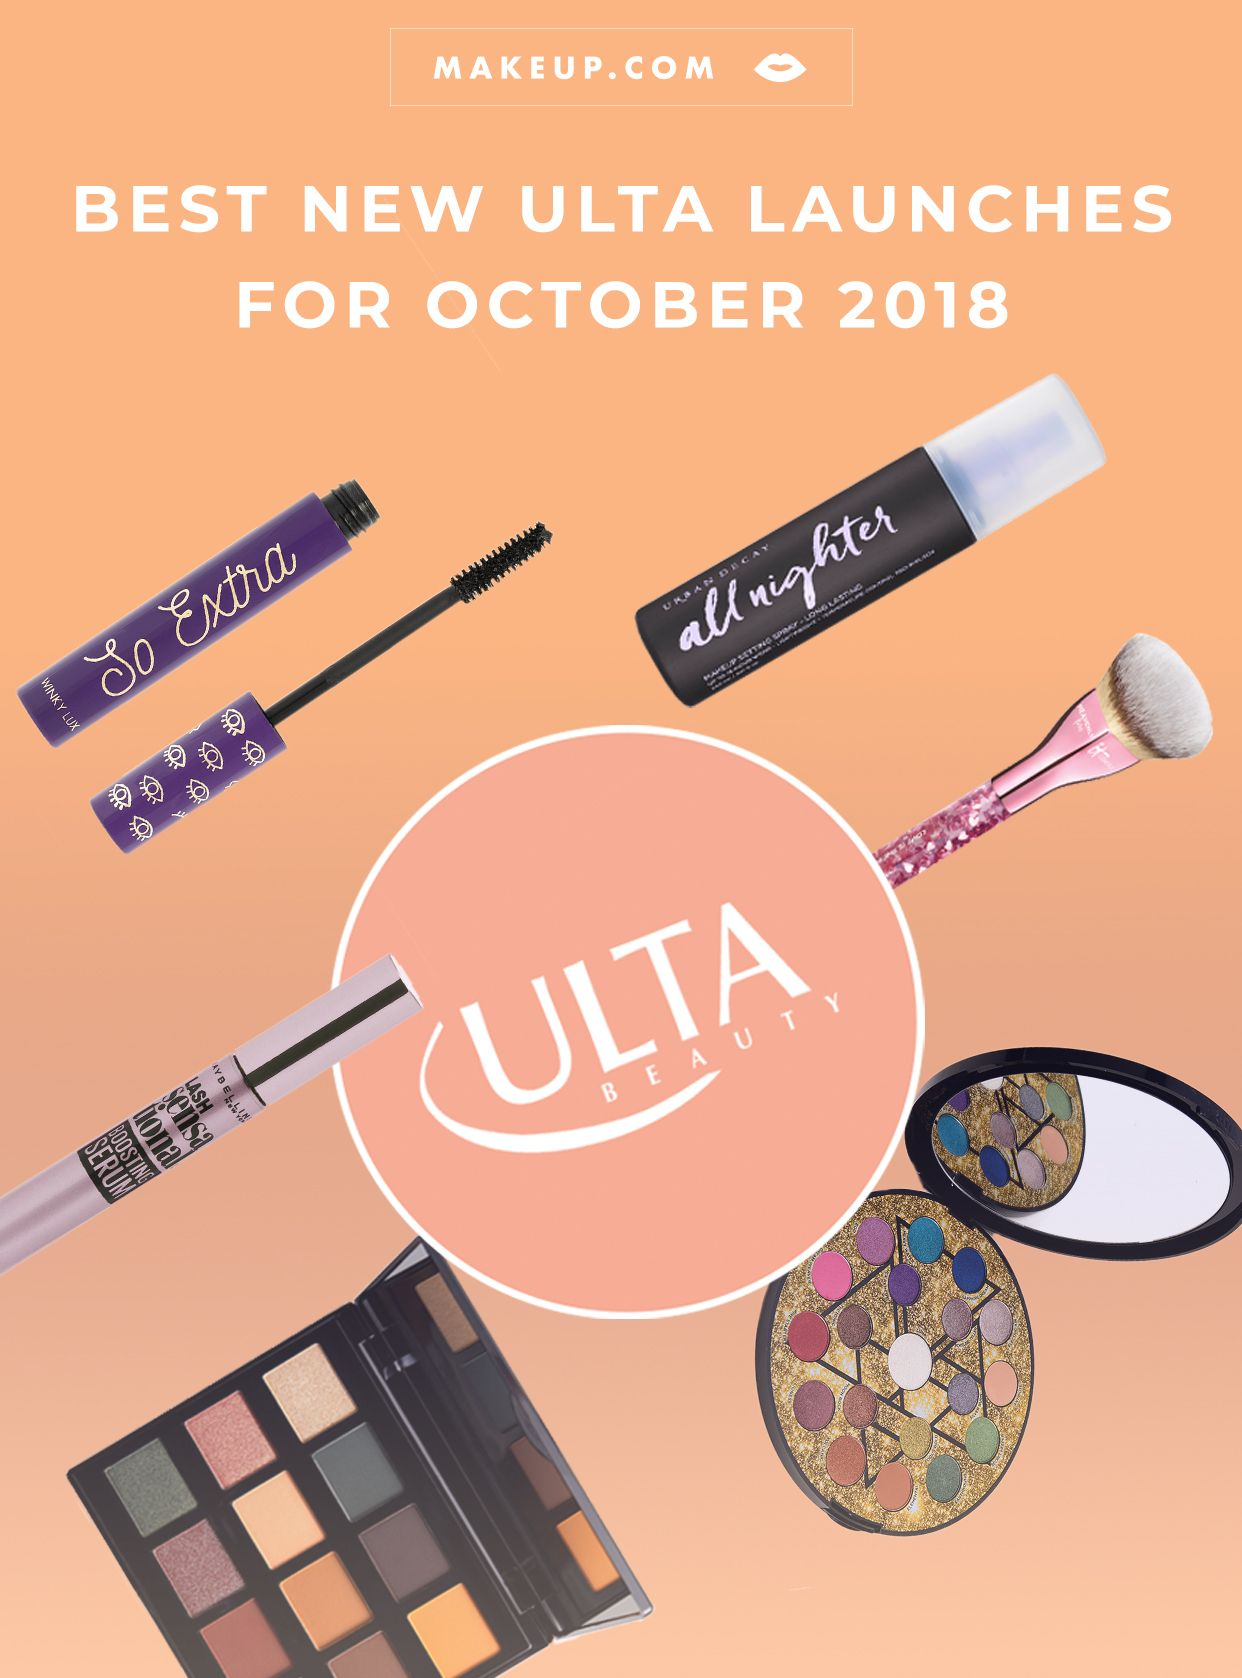 6c30ac18575 Best New Ulta Launches For October 2018 in 2019 | DRUGSTORE BEAUTY |  Pinterest | Makeup, Makeup trends and Makeup geek